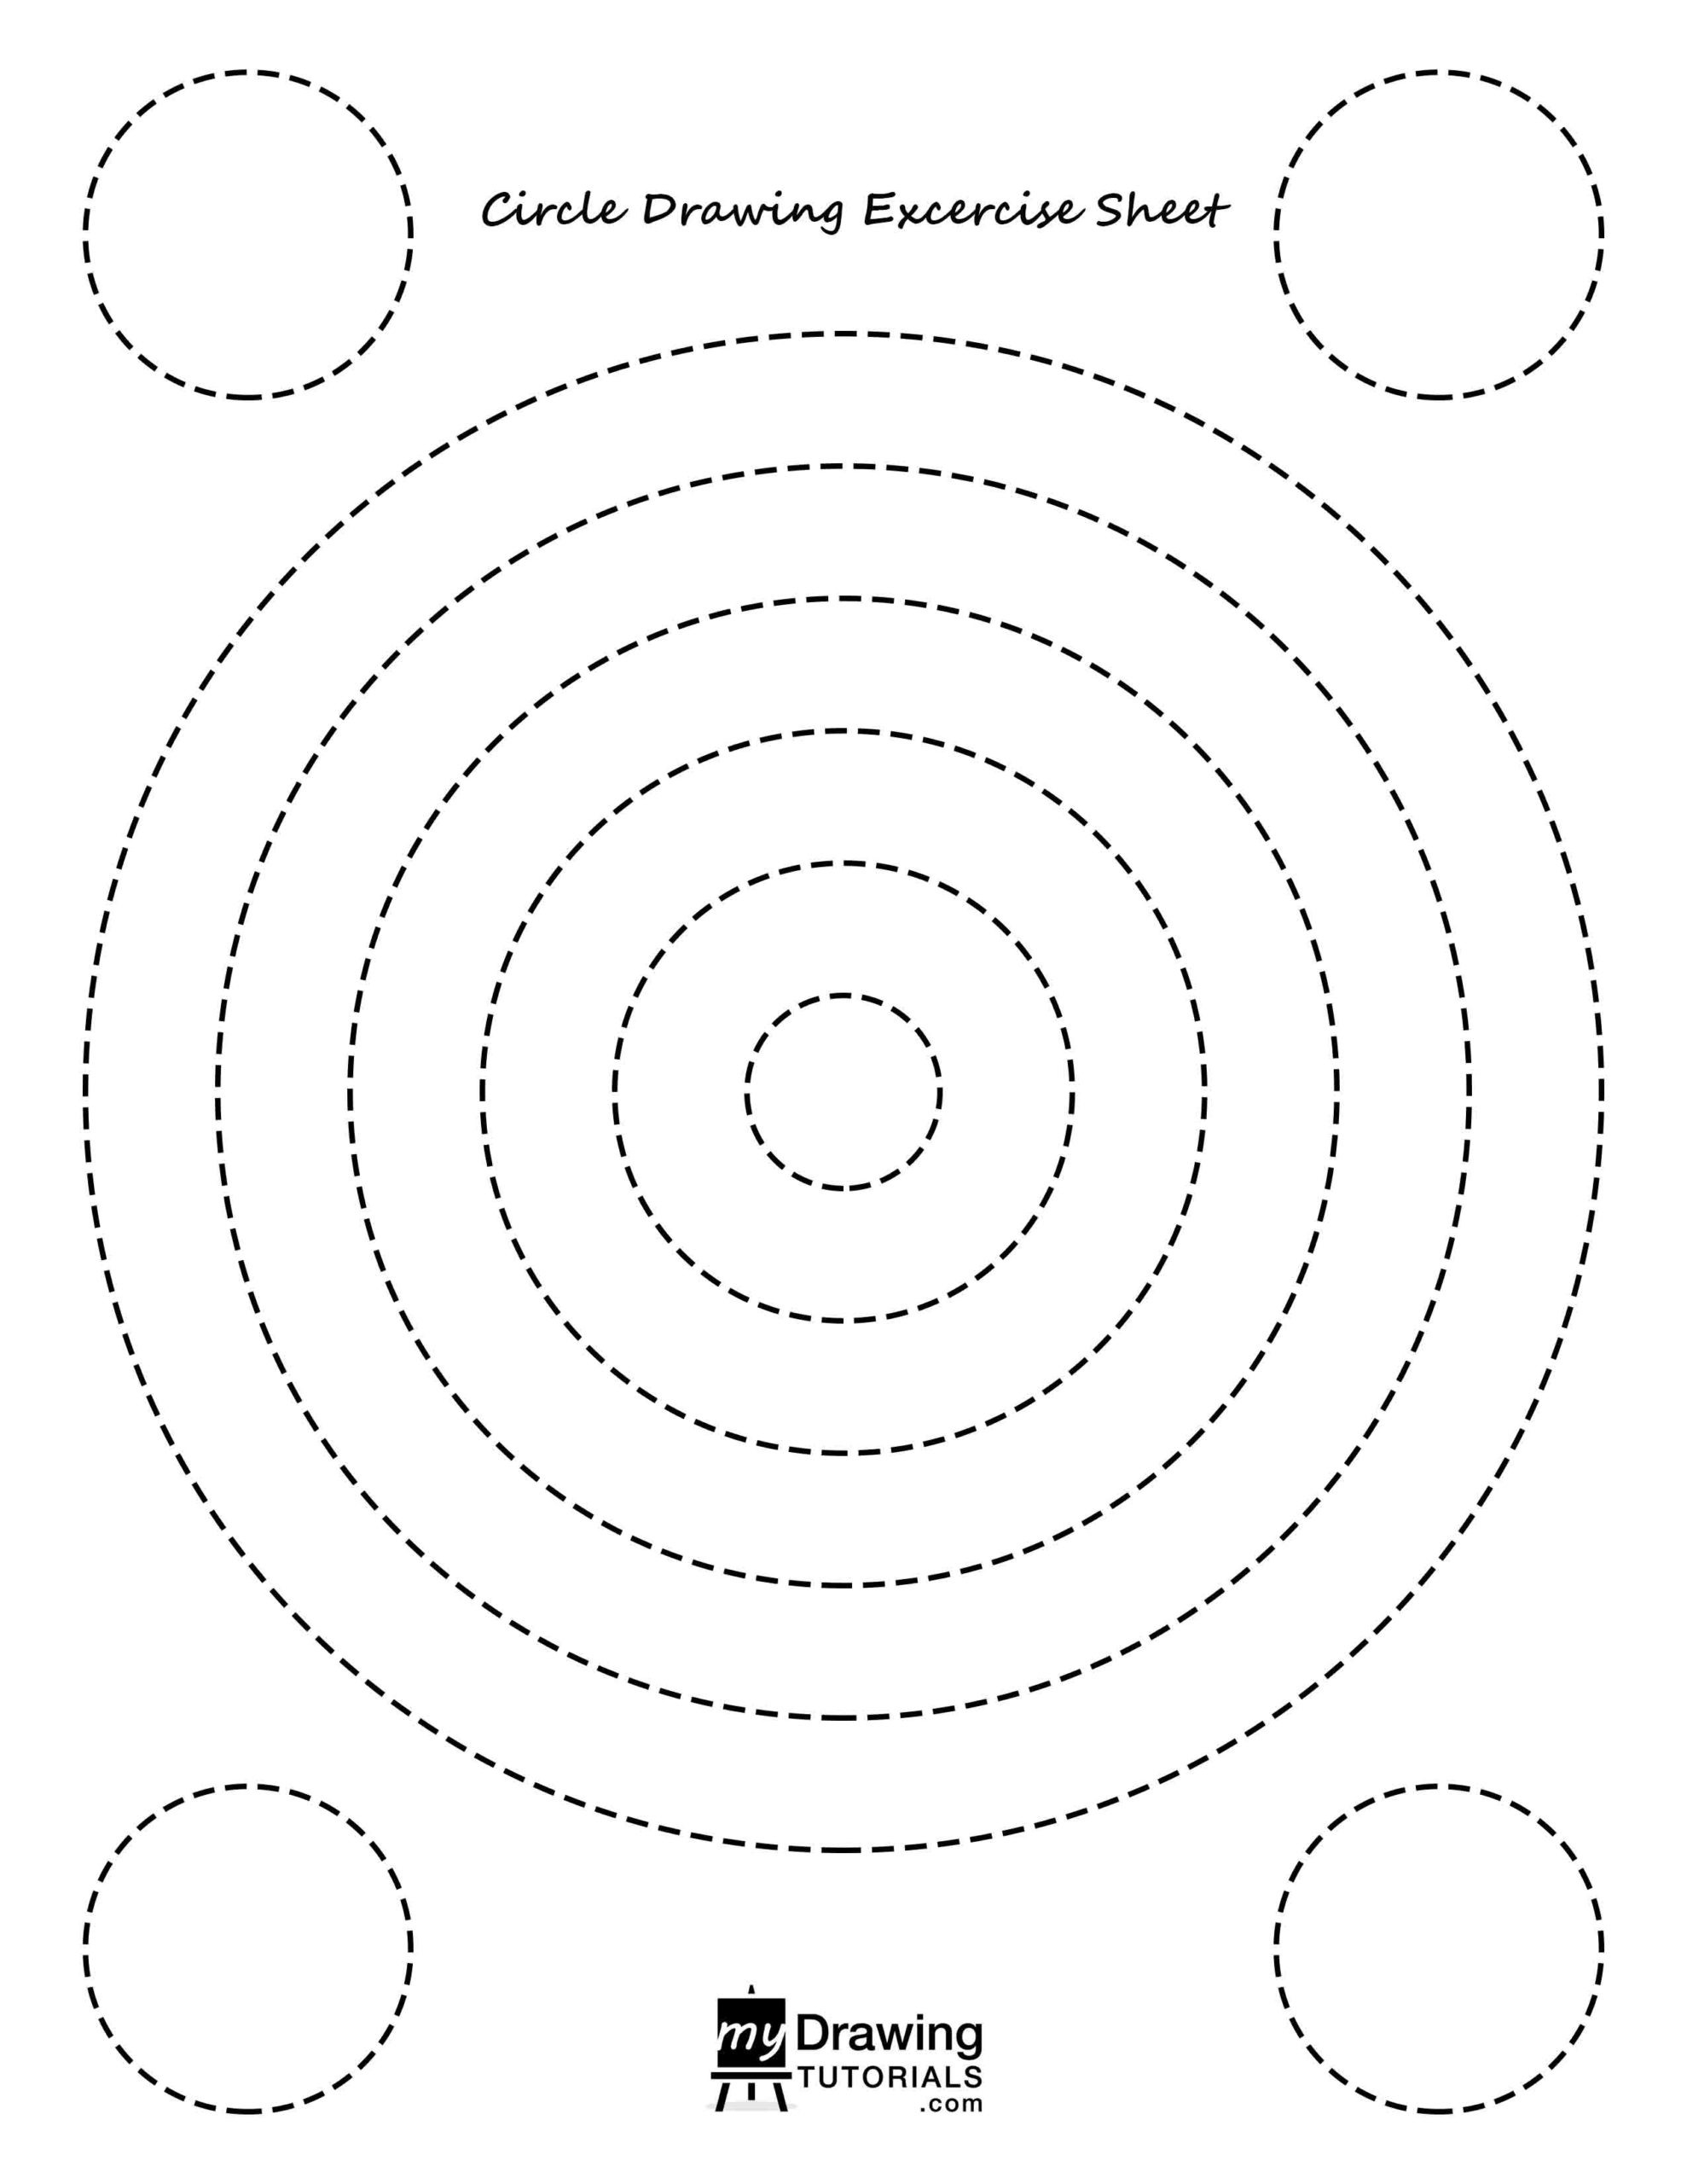 Circle Graphs Worksheets 7th Grade Keyboard Worksheet Printout Printable Worksheets and